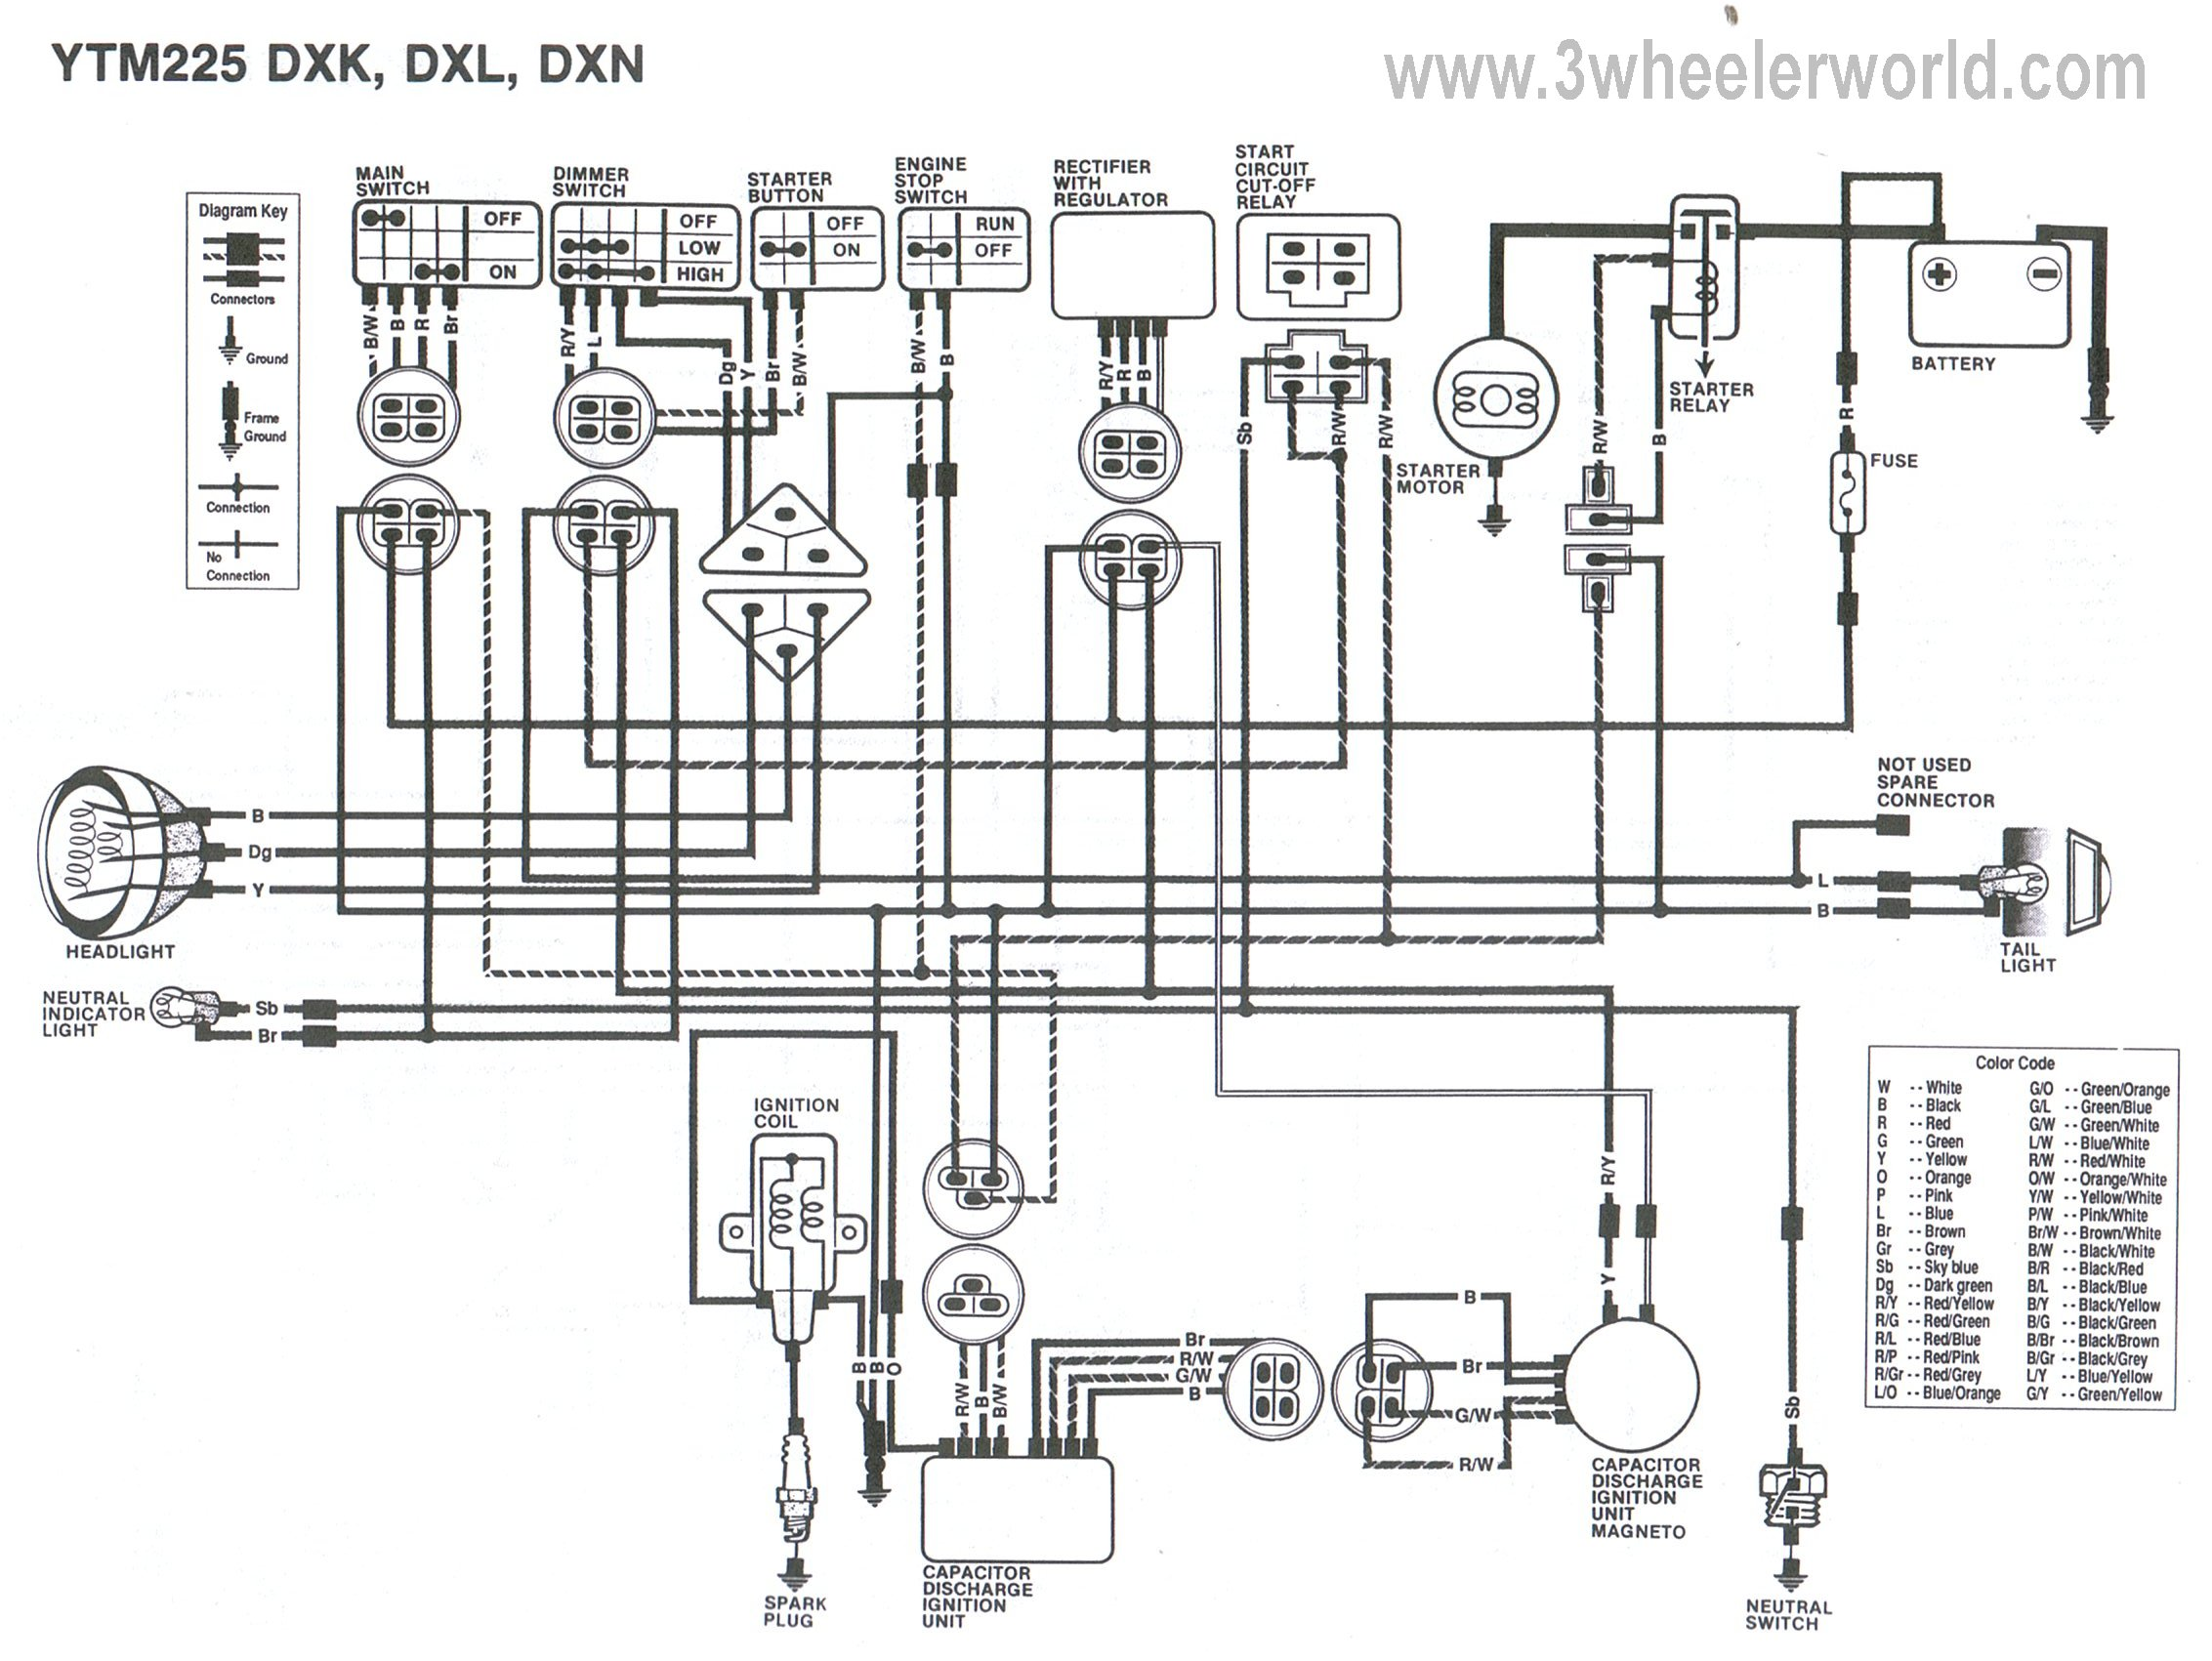 YTM225DXKDXLDXN 3 wheeler world tech help yamaha wiring diagrams yamaha 200 outboard wiring diagram at nearapp.co